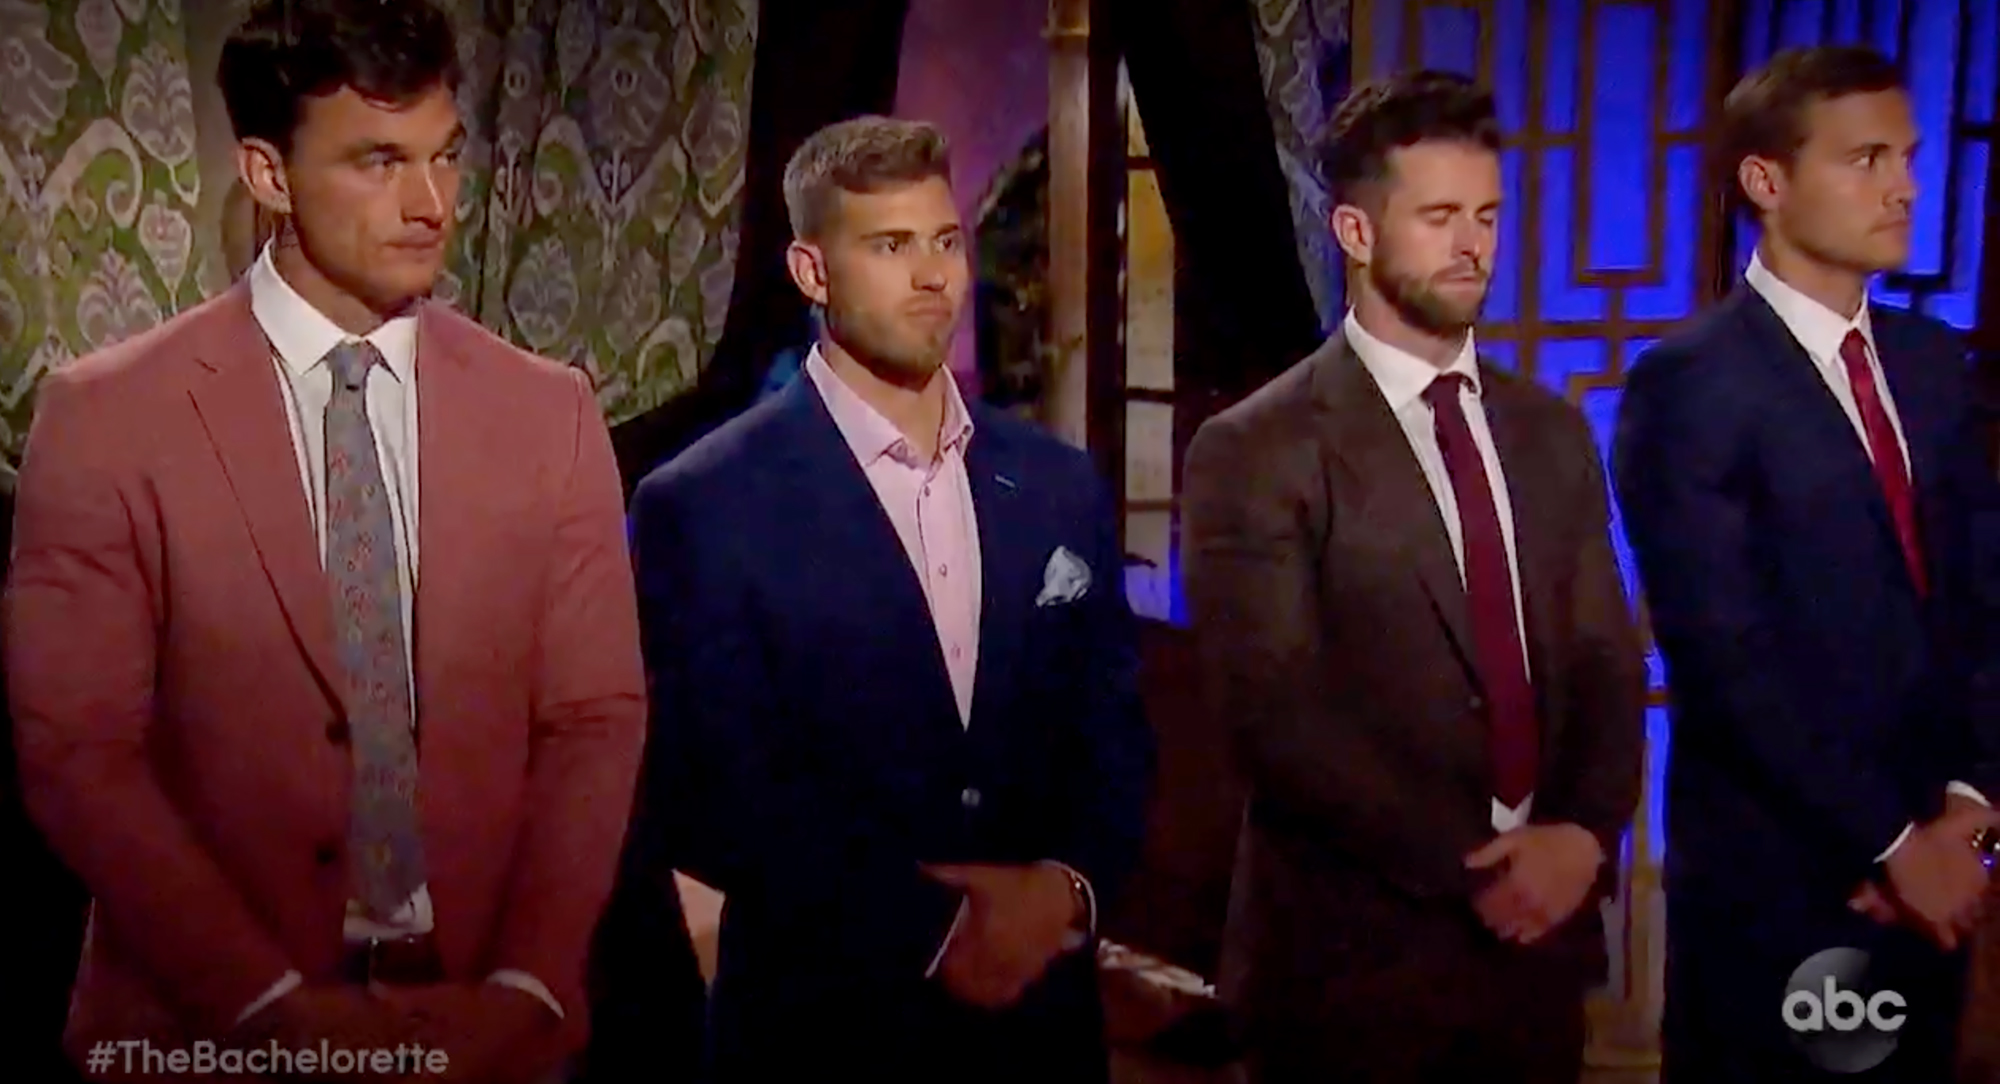 'Bachelorette' Hometowns Sneak Peek: What Does Jed's Mom Think of Hannah?